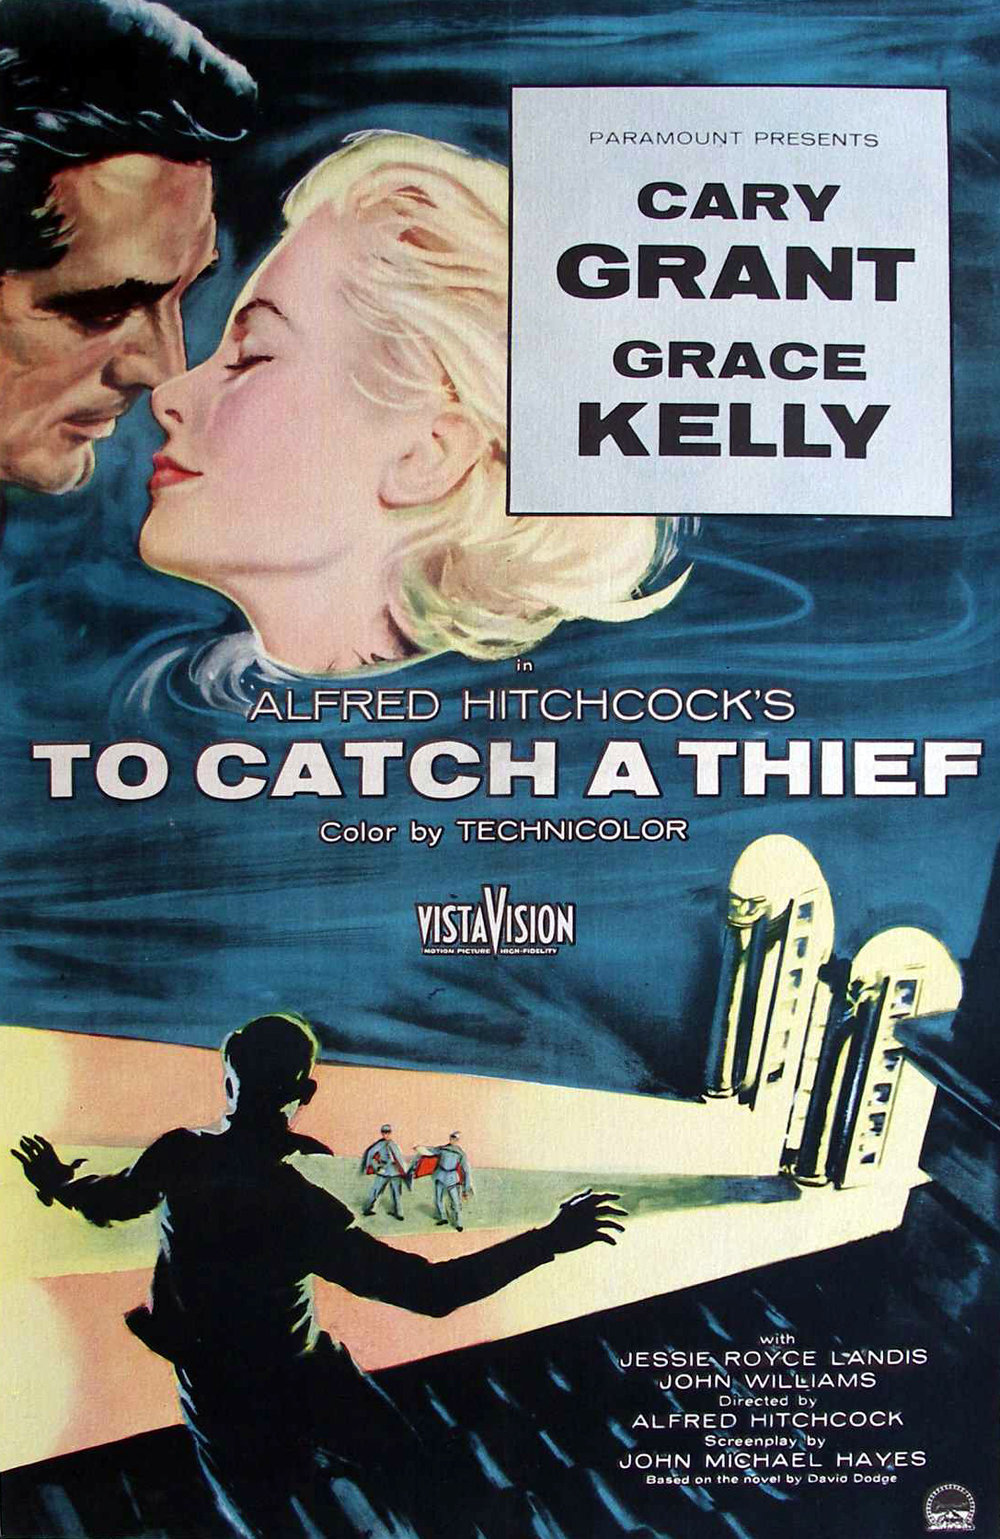 Day 1: To Catch a Thief  - We started off the new year with a Hitchcock classic! Cary Grant snapped as John Robie, an ex-jewel thief who's on the run after being the prime suspect after a string of recent jewel robberies.